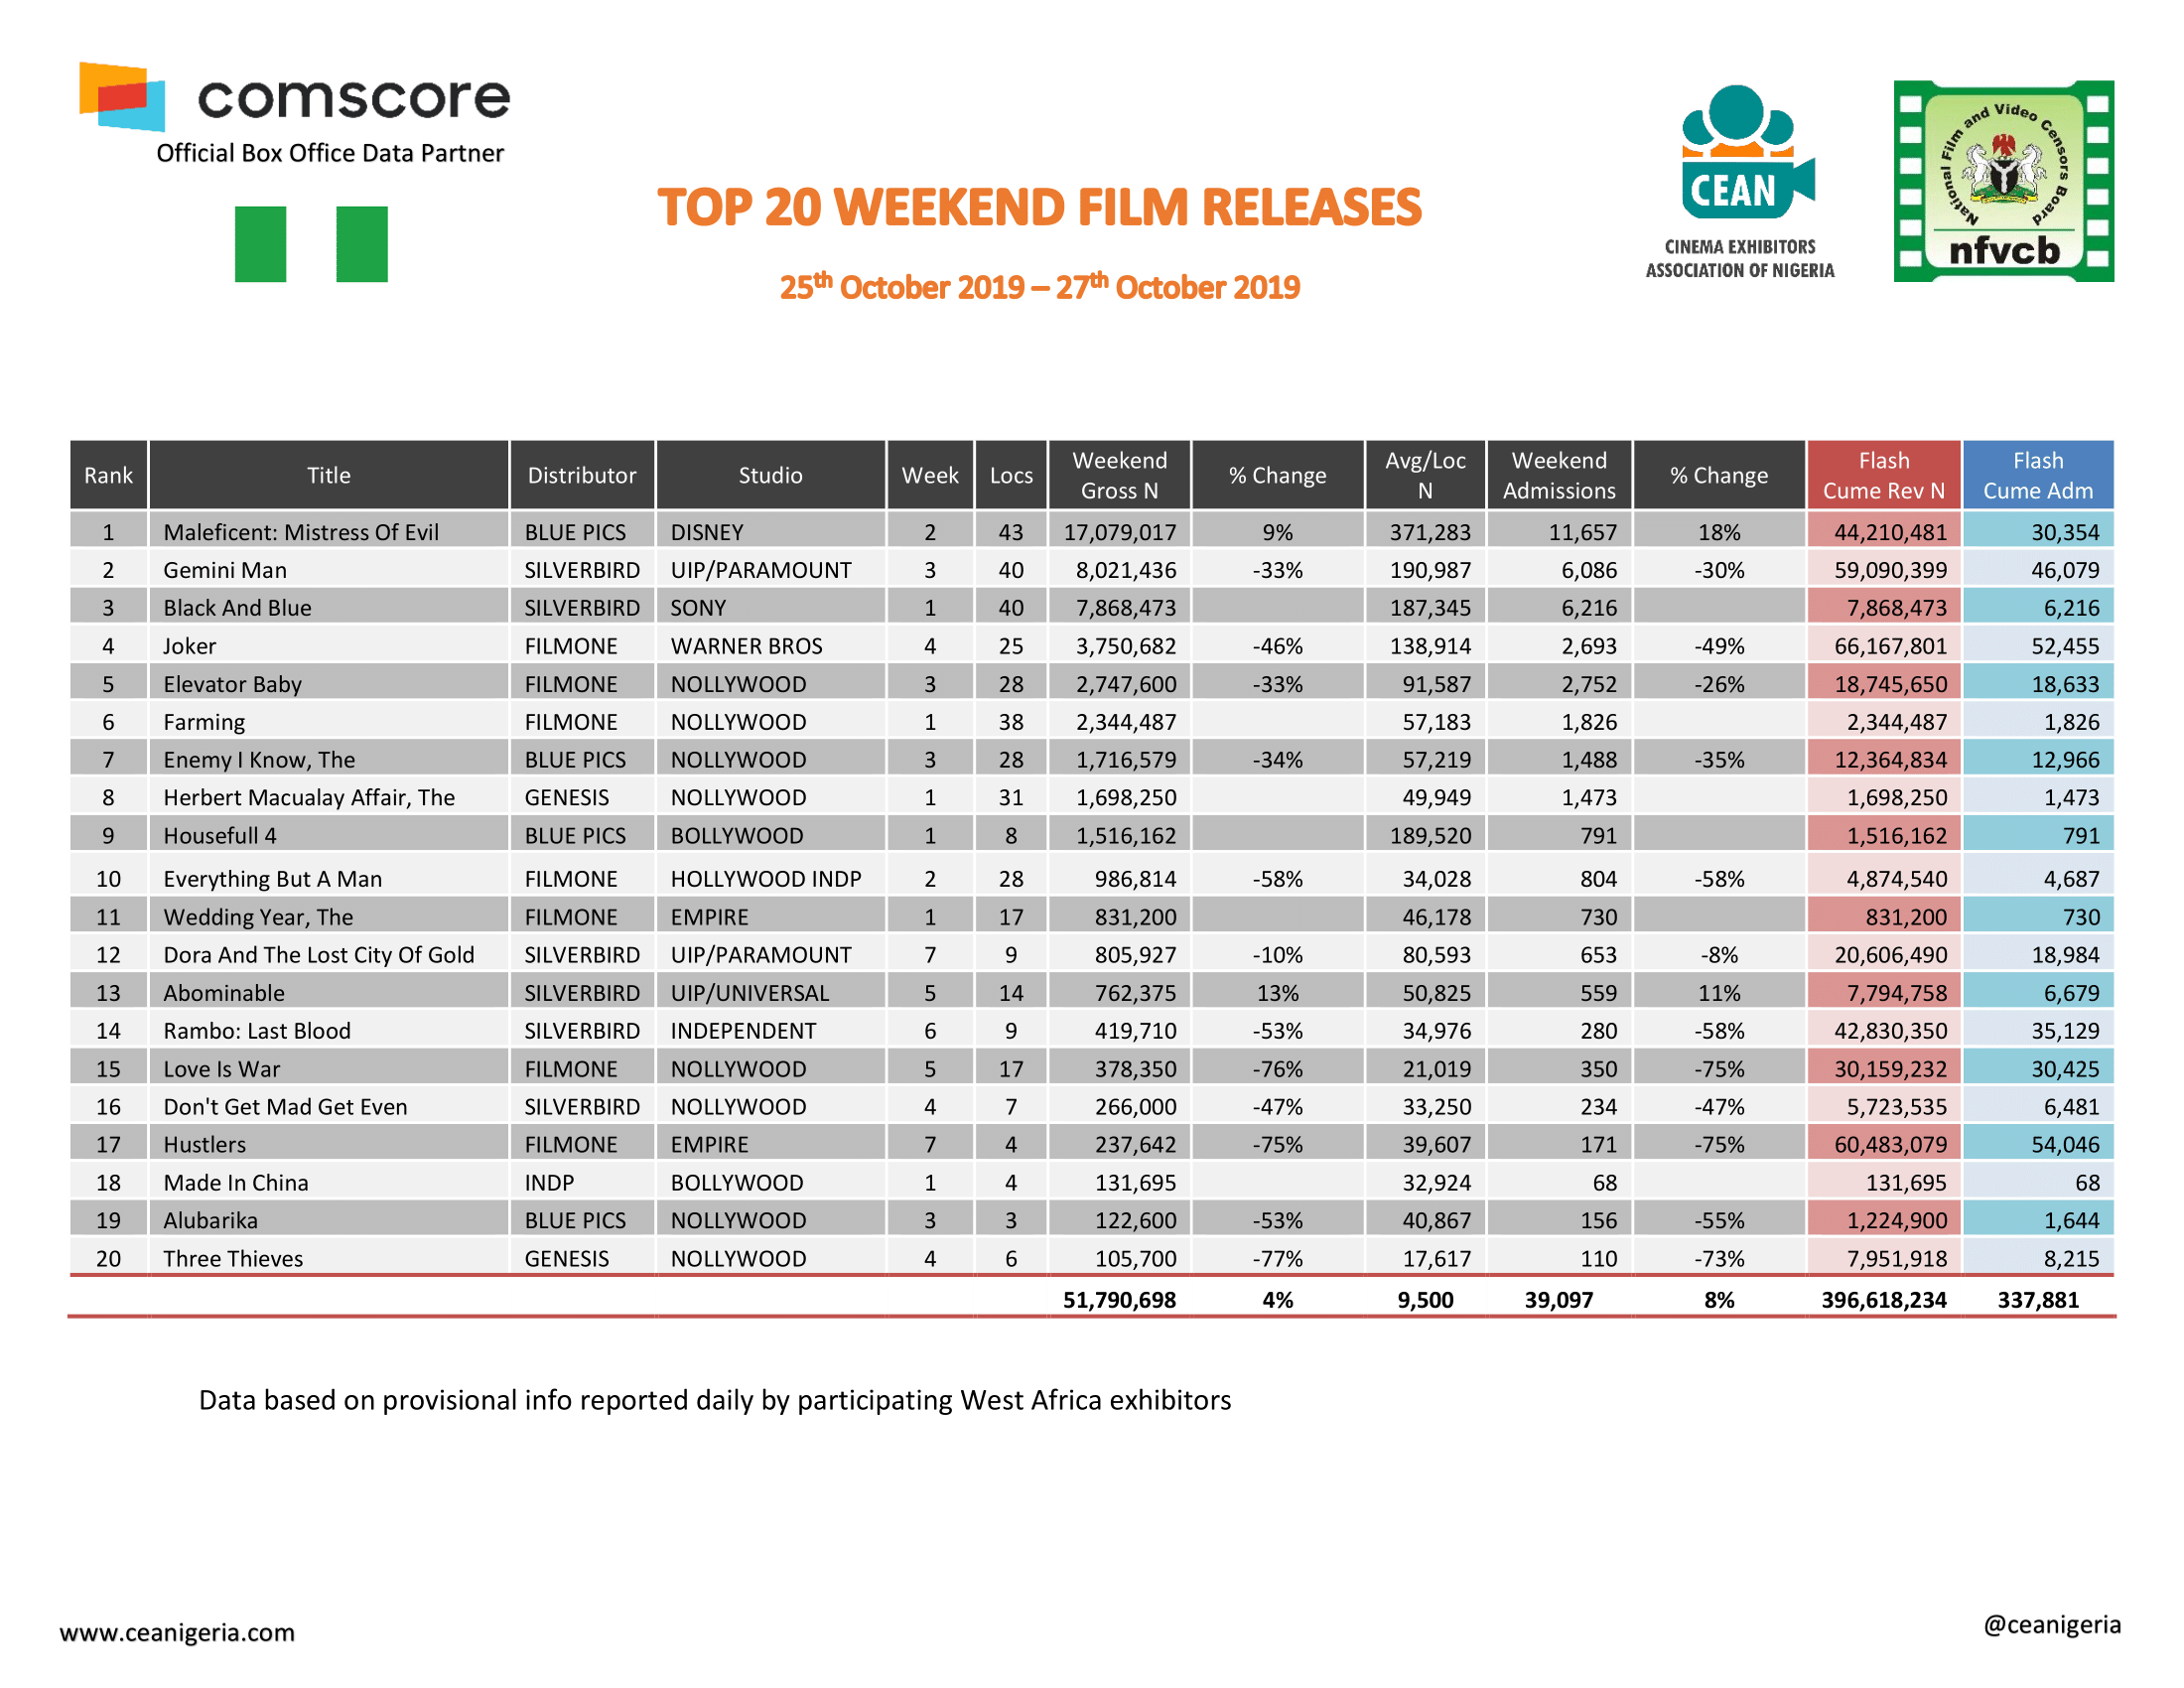 Top 20 films 25th Oct 27th Oct 2019 1